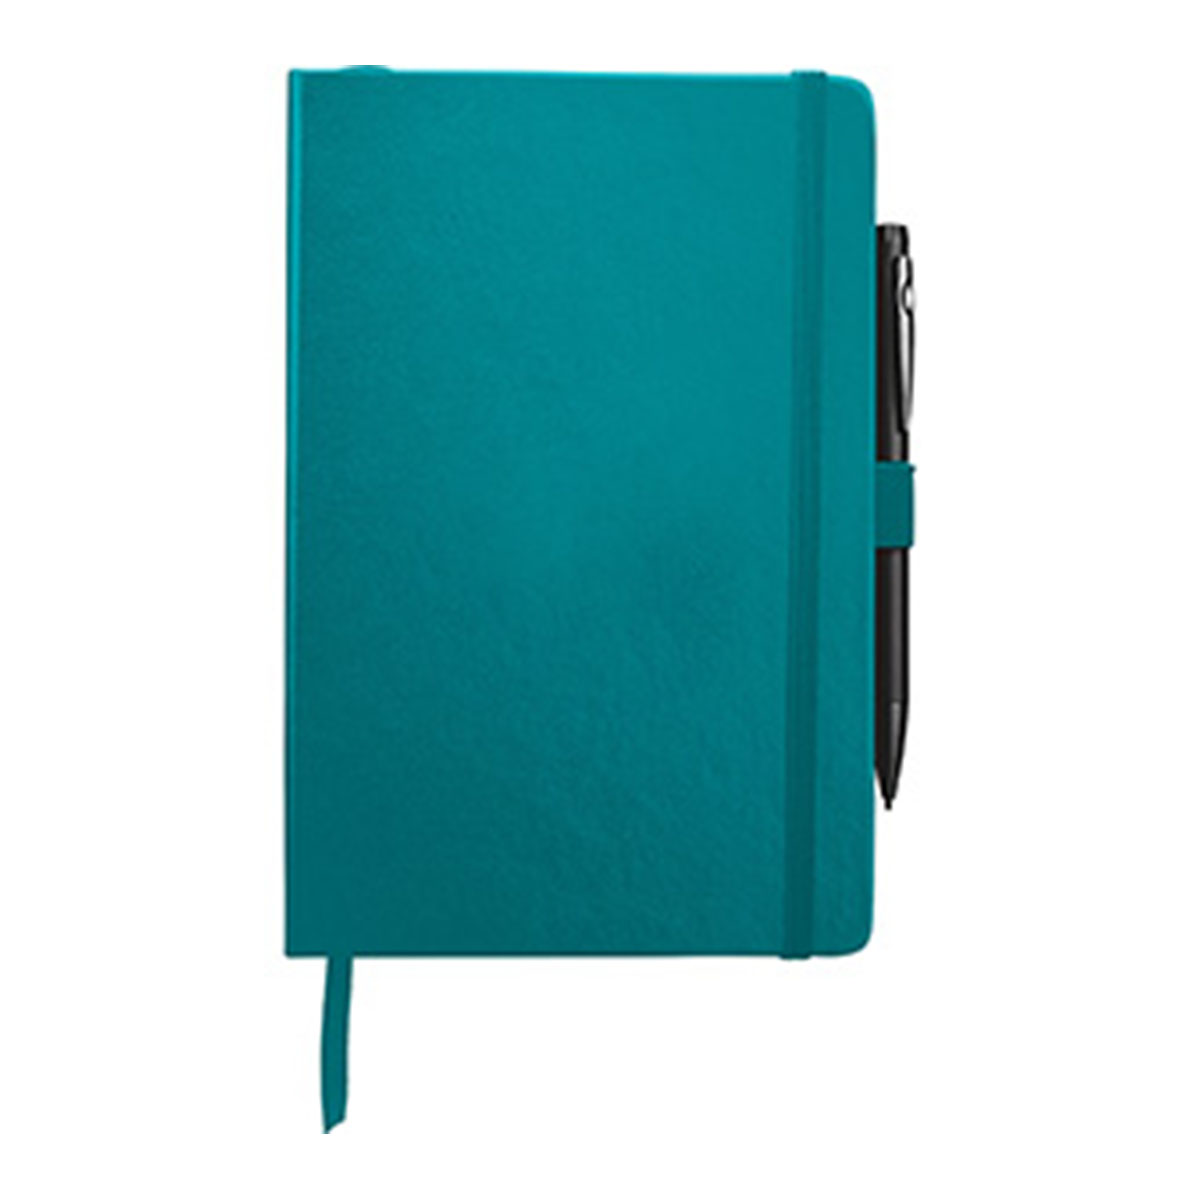 Nova Bound JournalBook